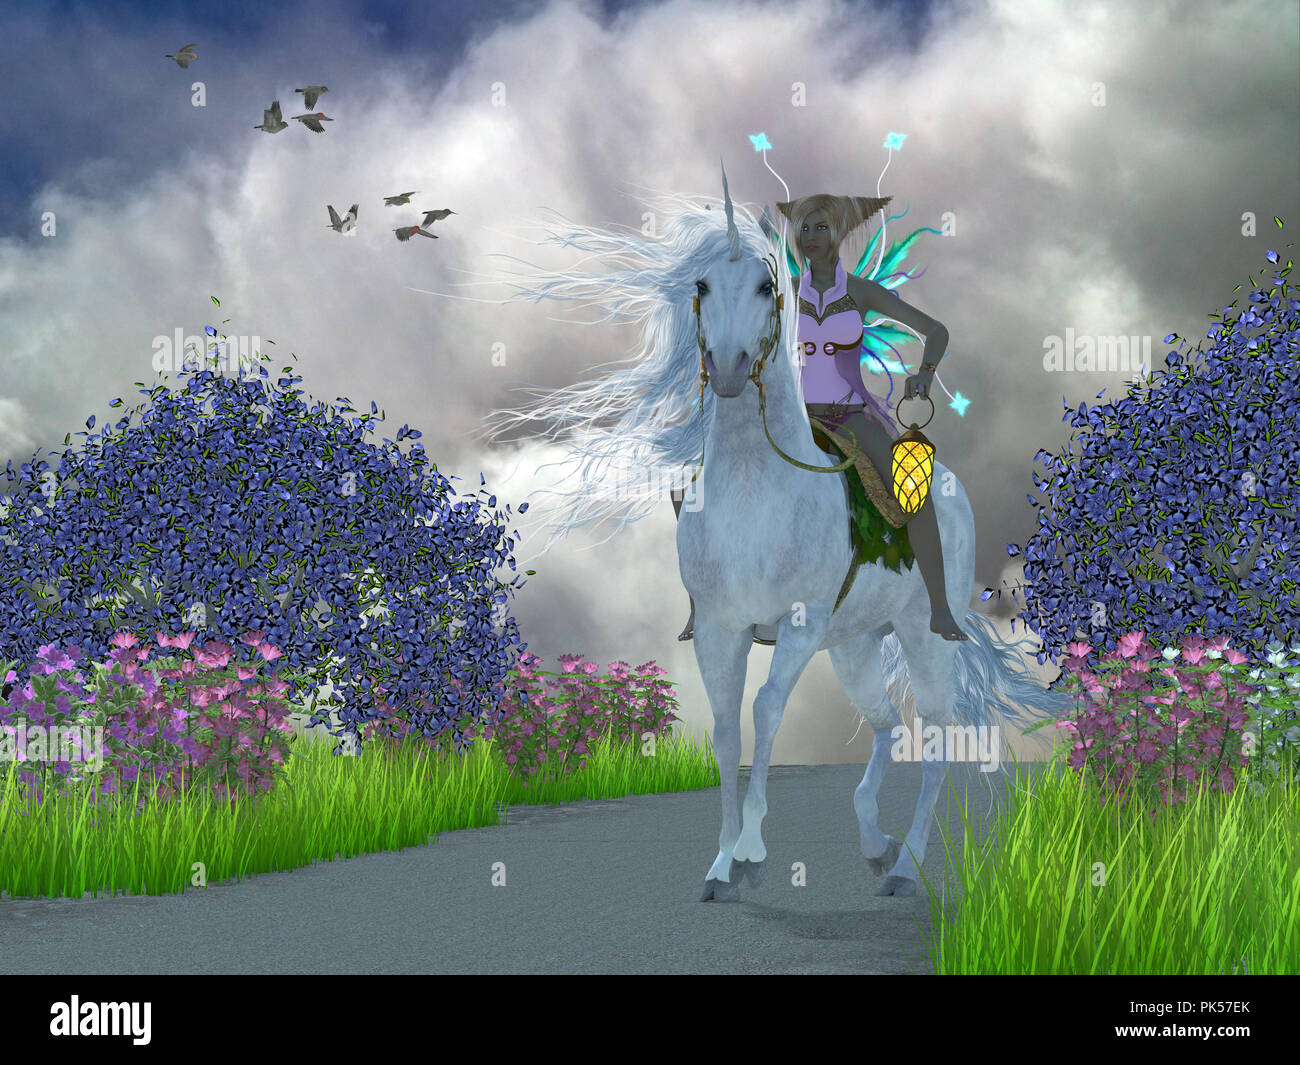 Fairy Lila with Unicorn - A fairy dressed in pink lavender rides a magical white unicorn through a foest of Jacaranda trees. - Stock Image